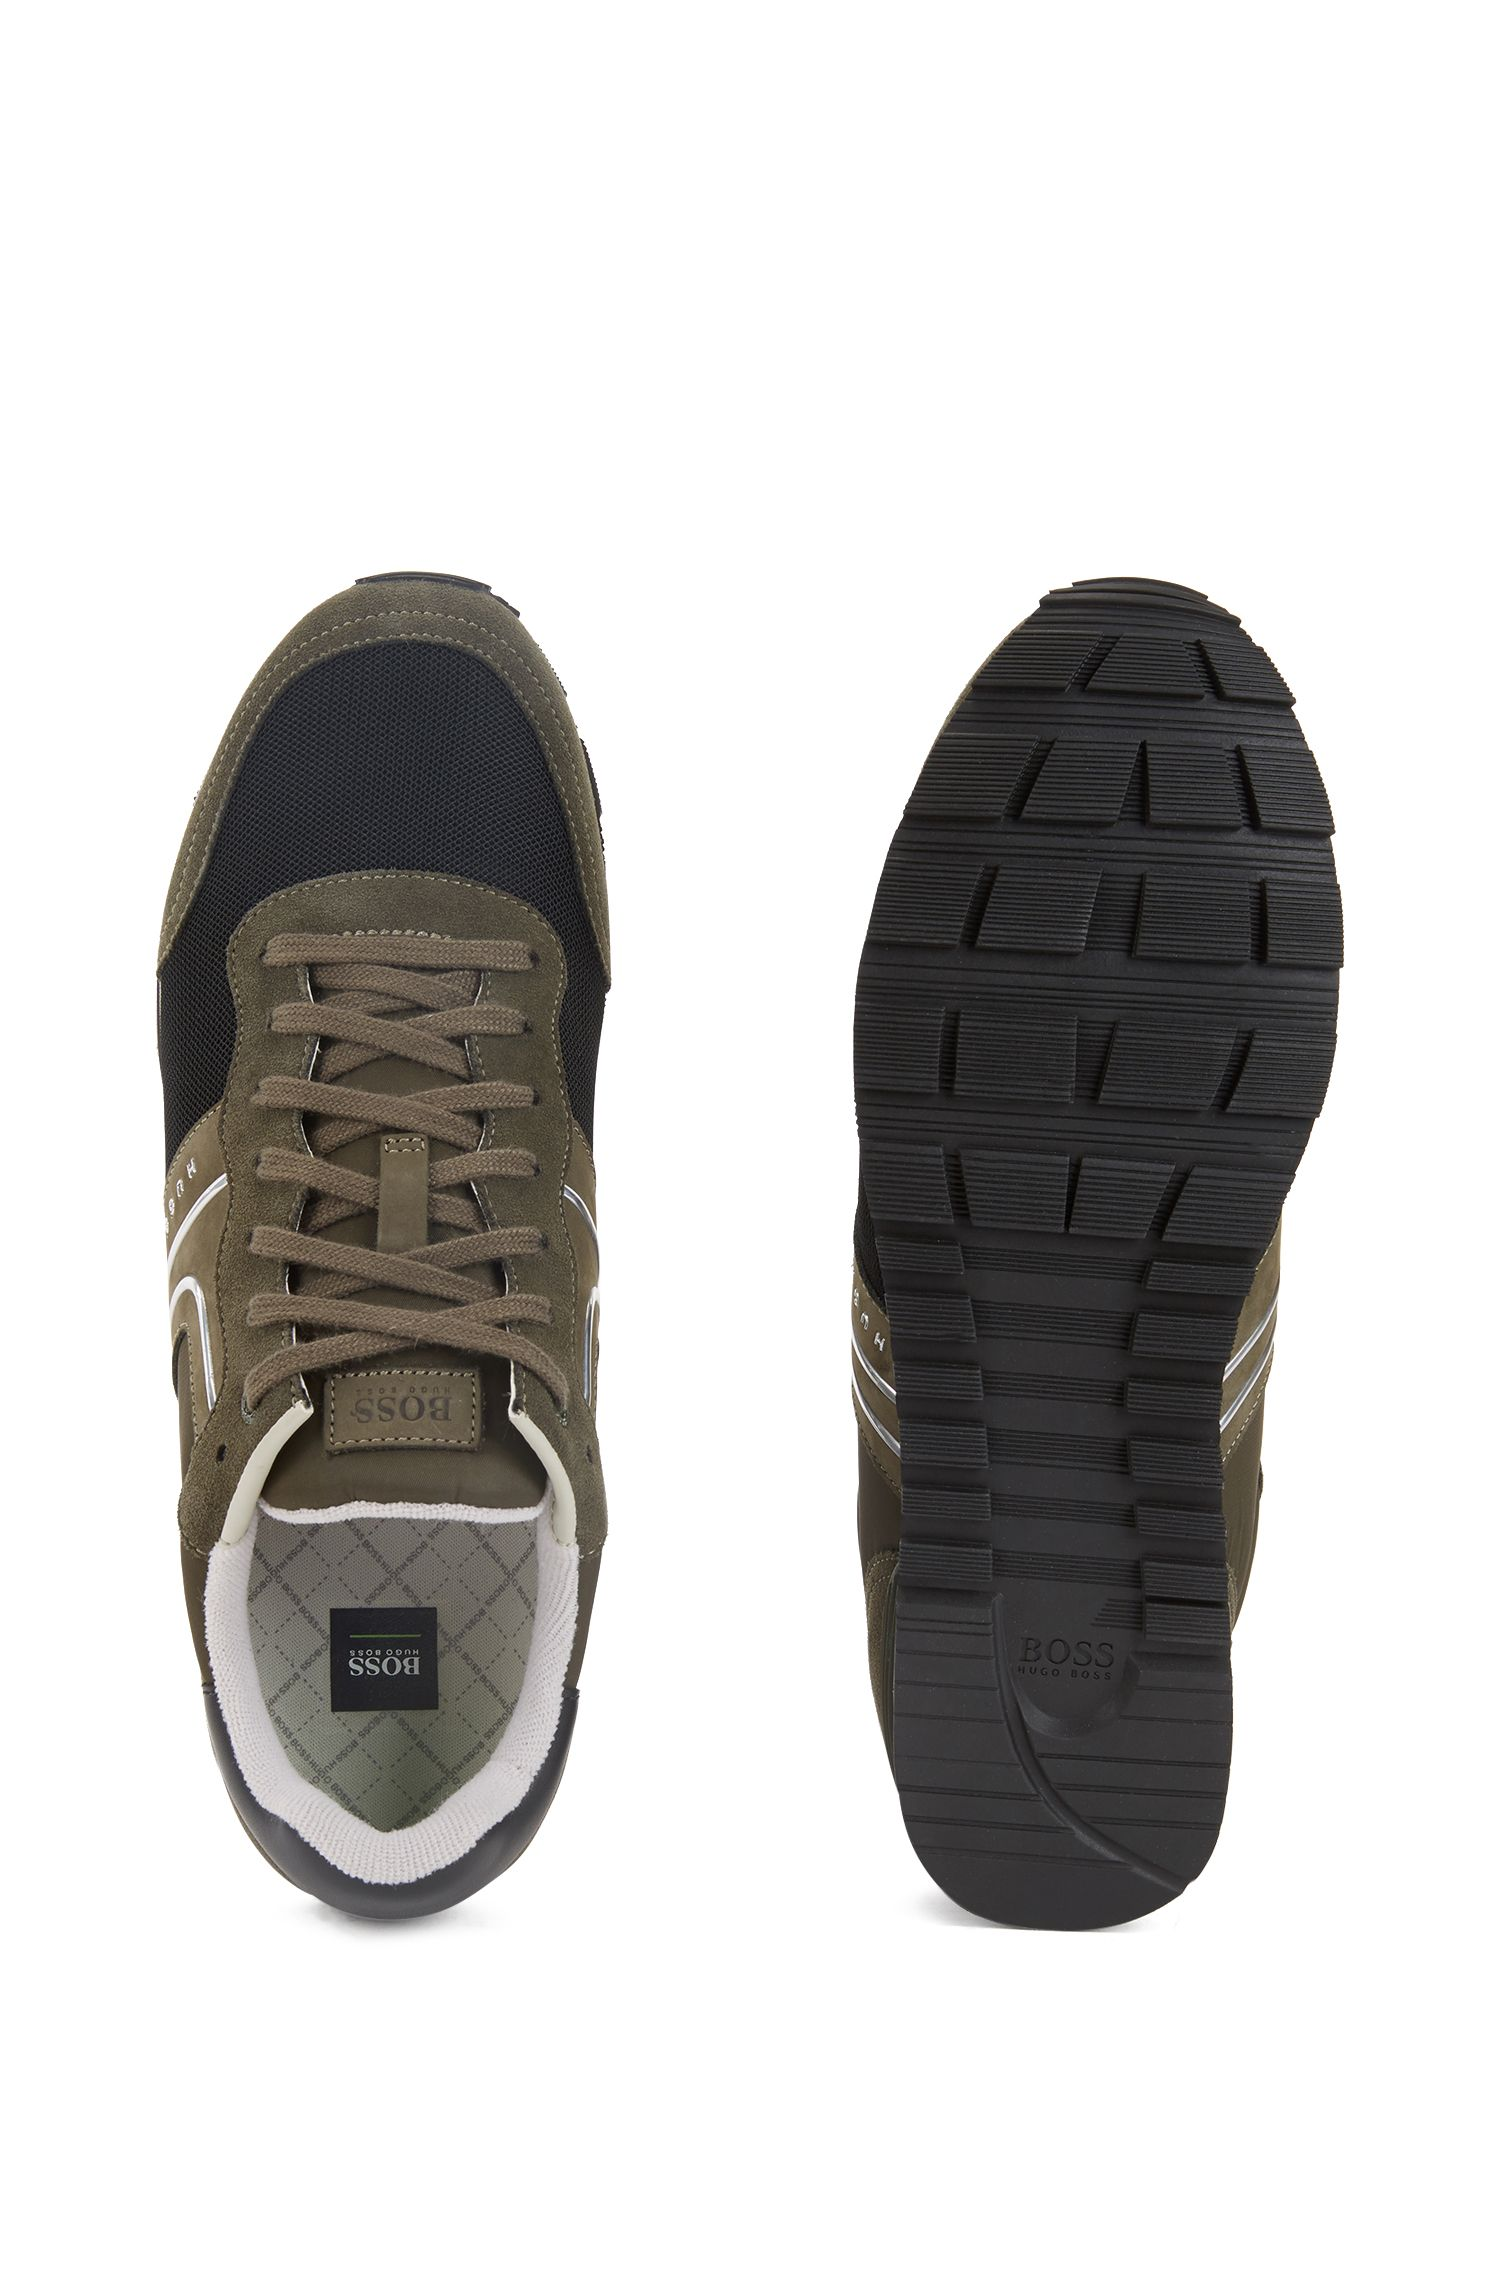 Lightweight lace-up trainers in hybrid fabric